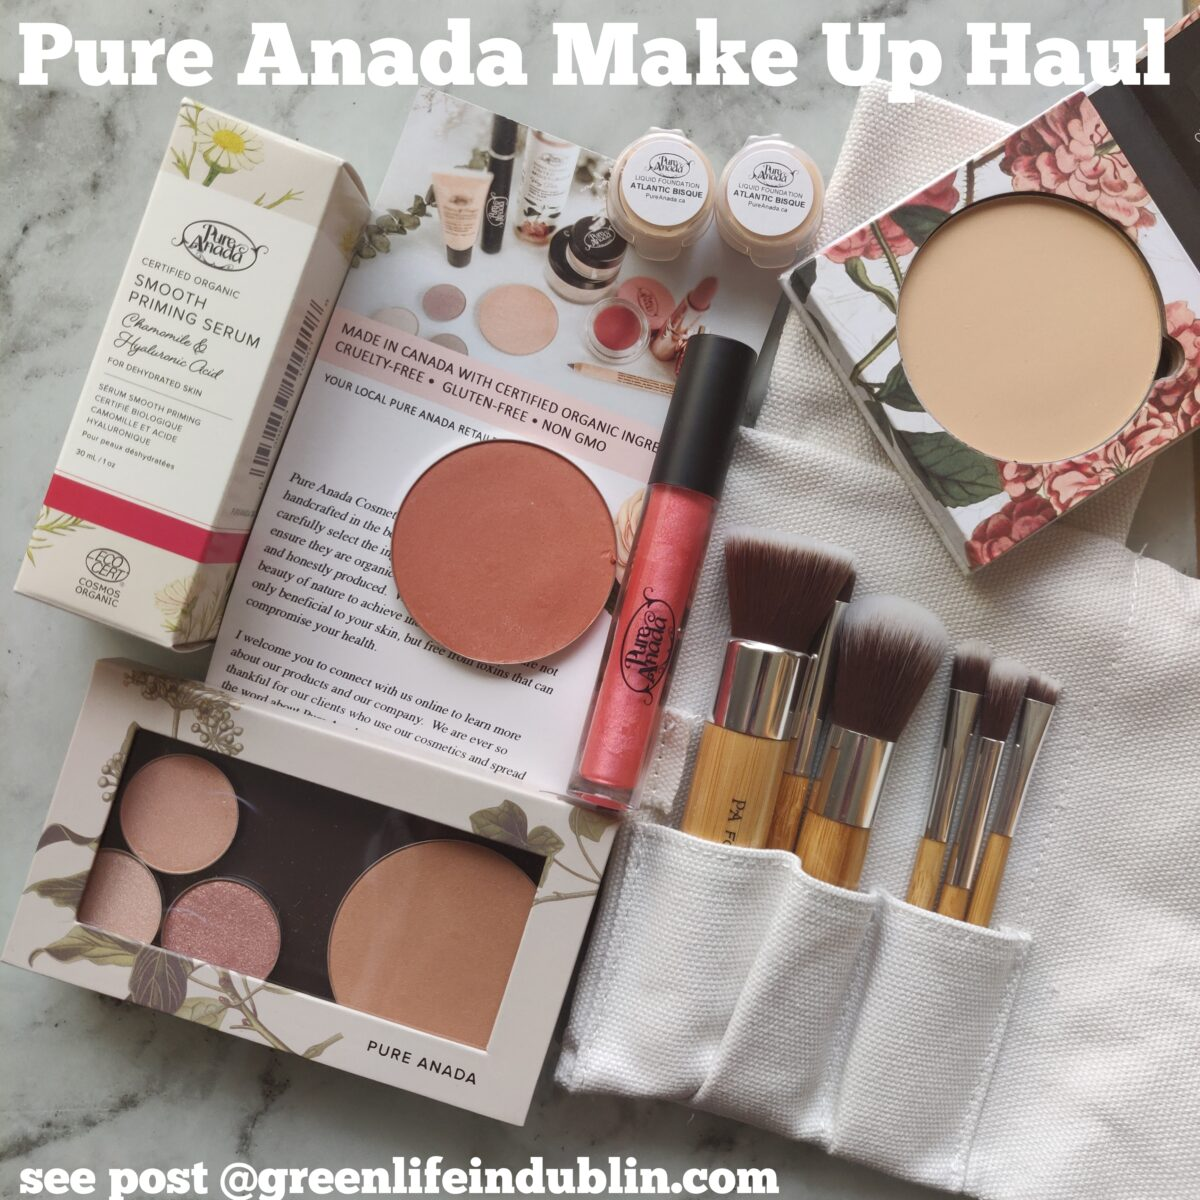 Pure Anada Make Up Haul – Green Life In Dublin